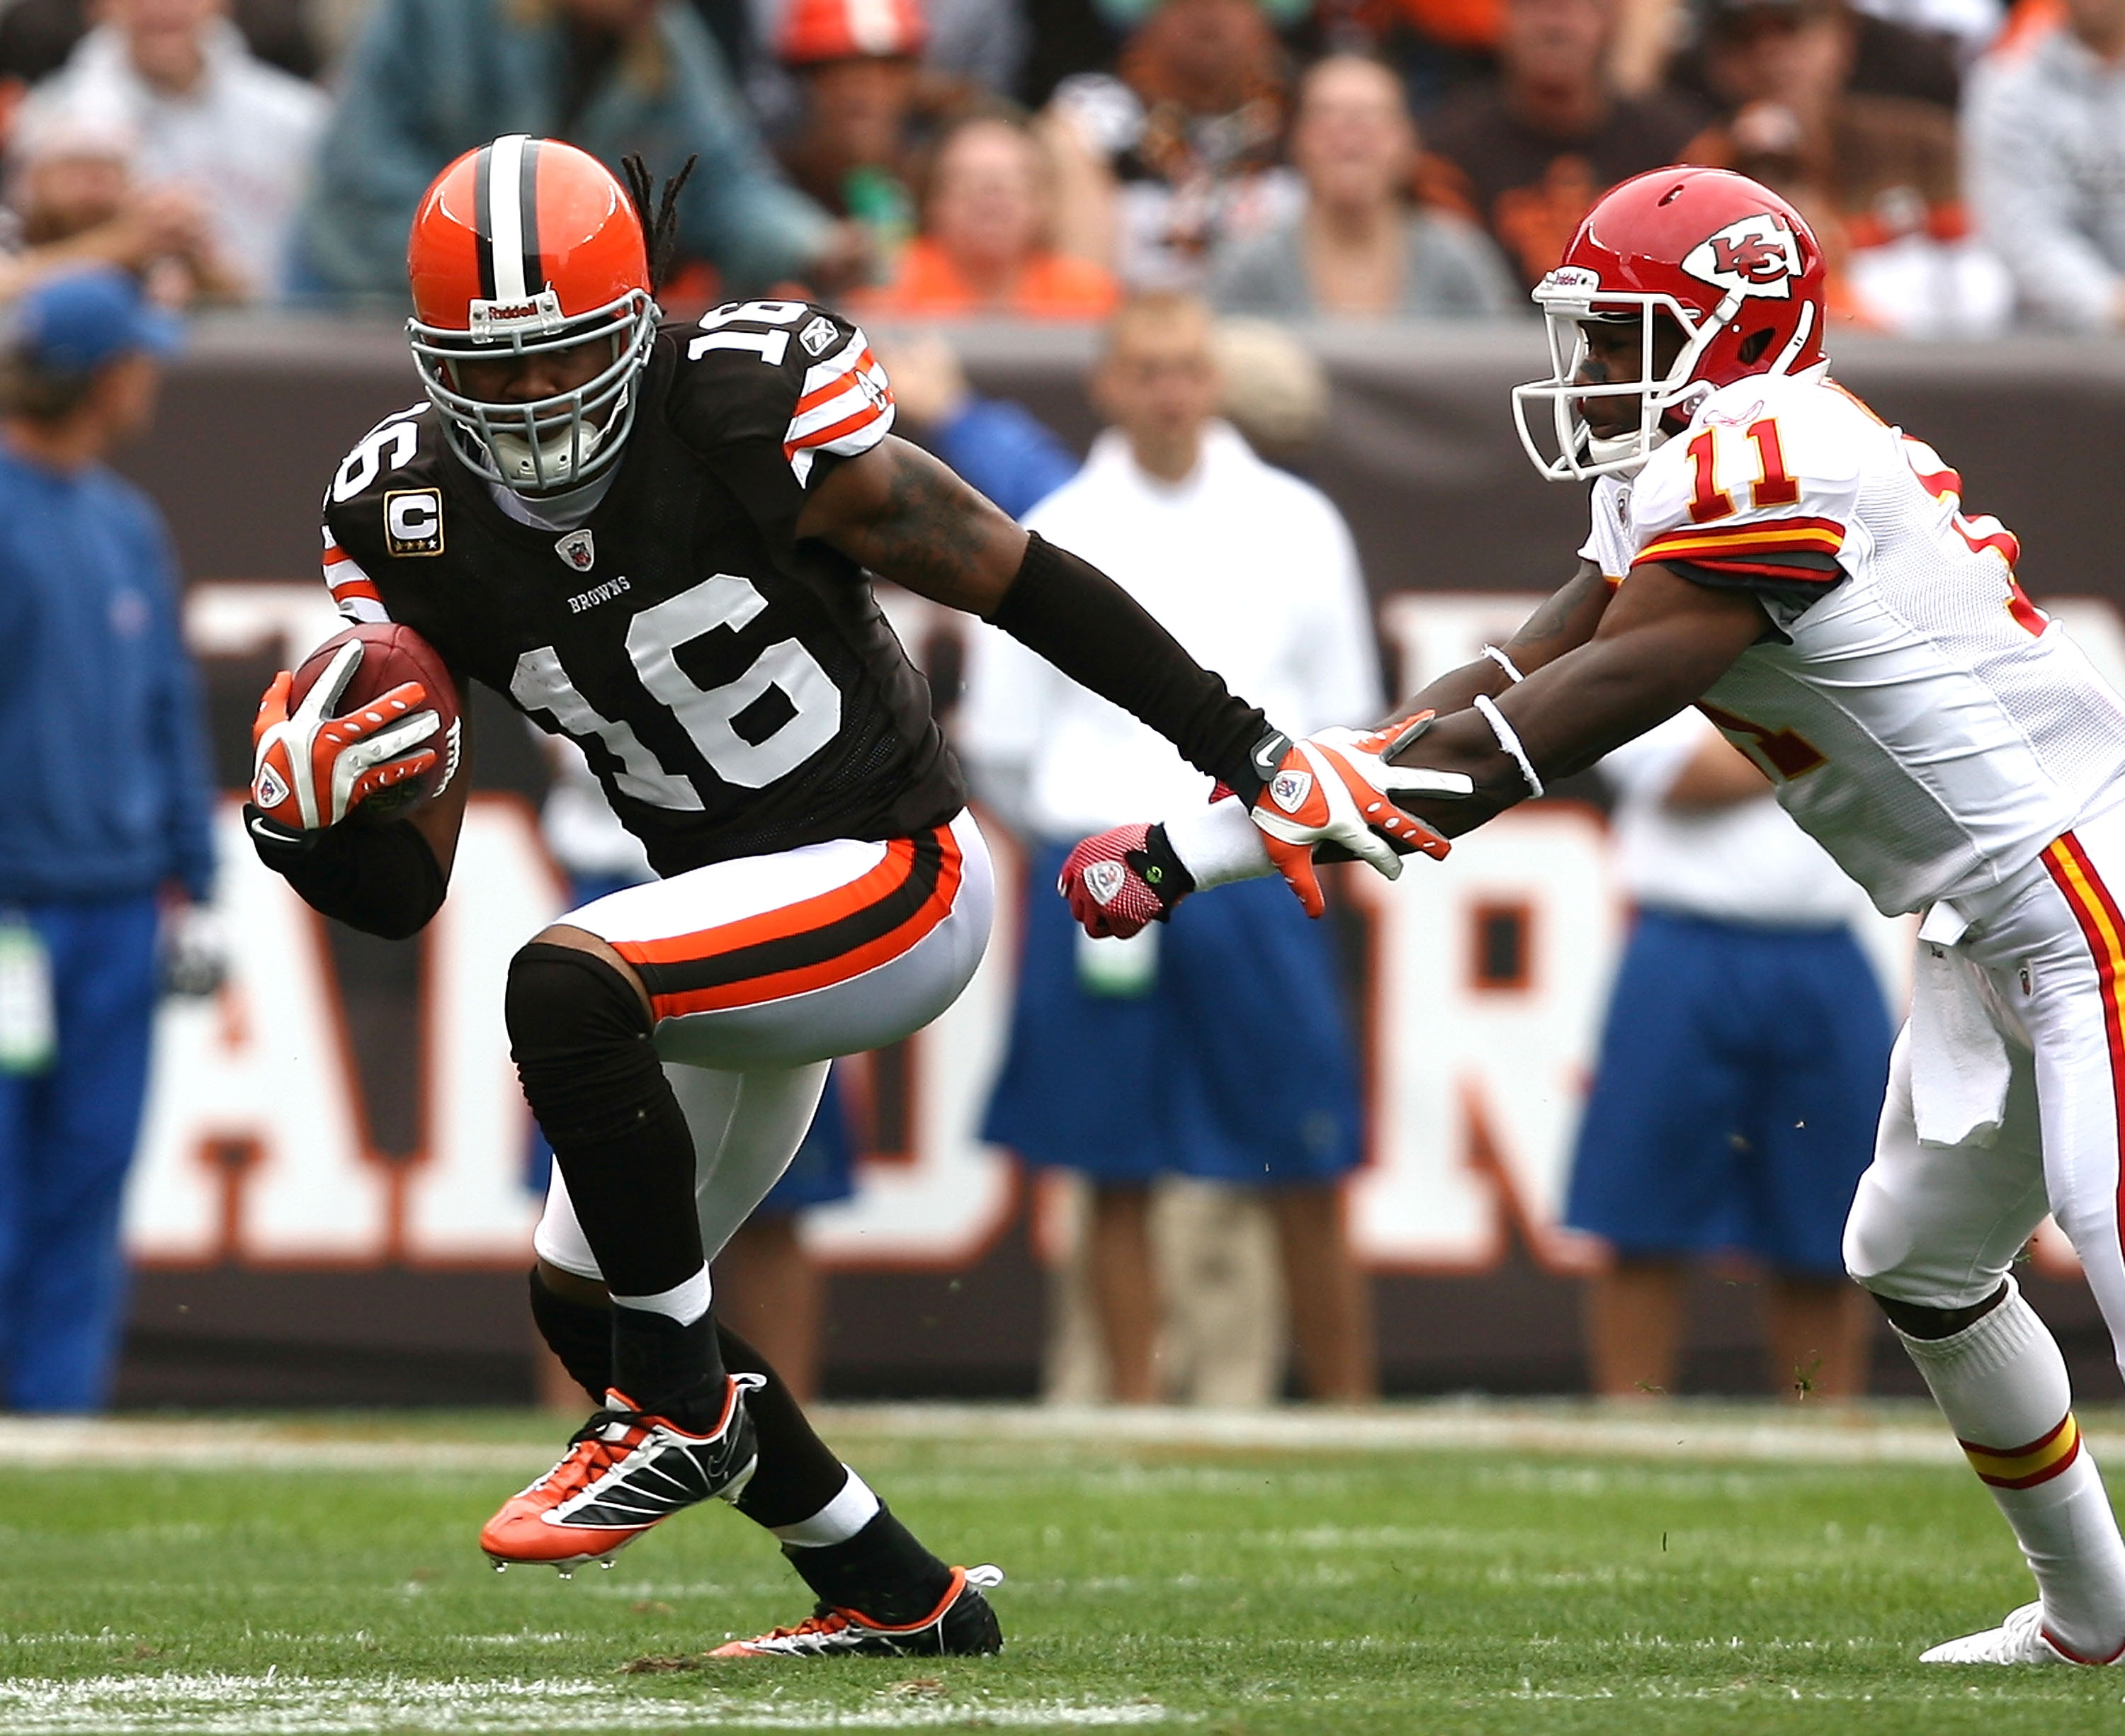 CLEVELAND - SEPTEMBER 19:  Wide receiver Joshua Cribbs #16 of the Cleveland Browns runs by wide receiver Jeremy Horne #11 of the Kansas City Chiefs at Cleveland Browns Stadium on September 19, 2010 in Cleveland, Ohio.  (Photo by Matt Sullivan/Getty Images